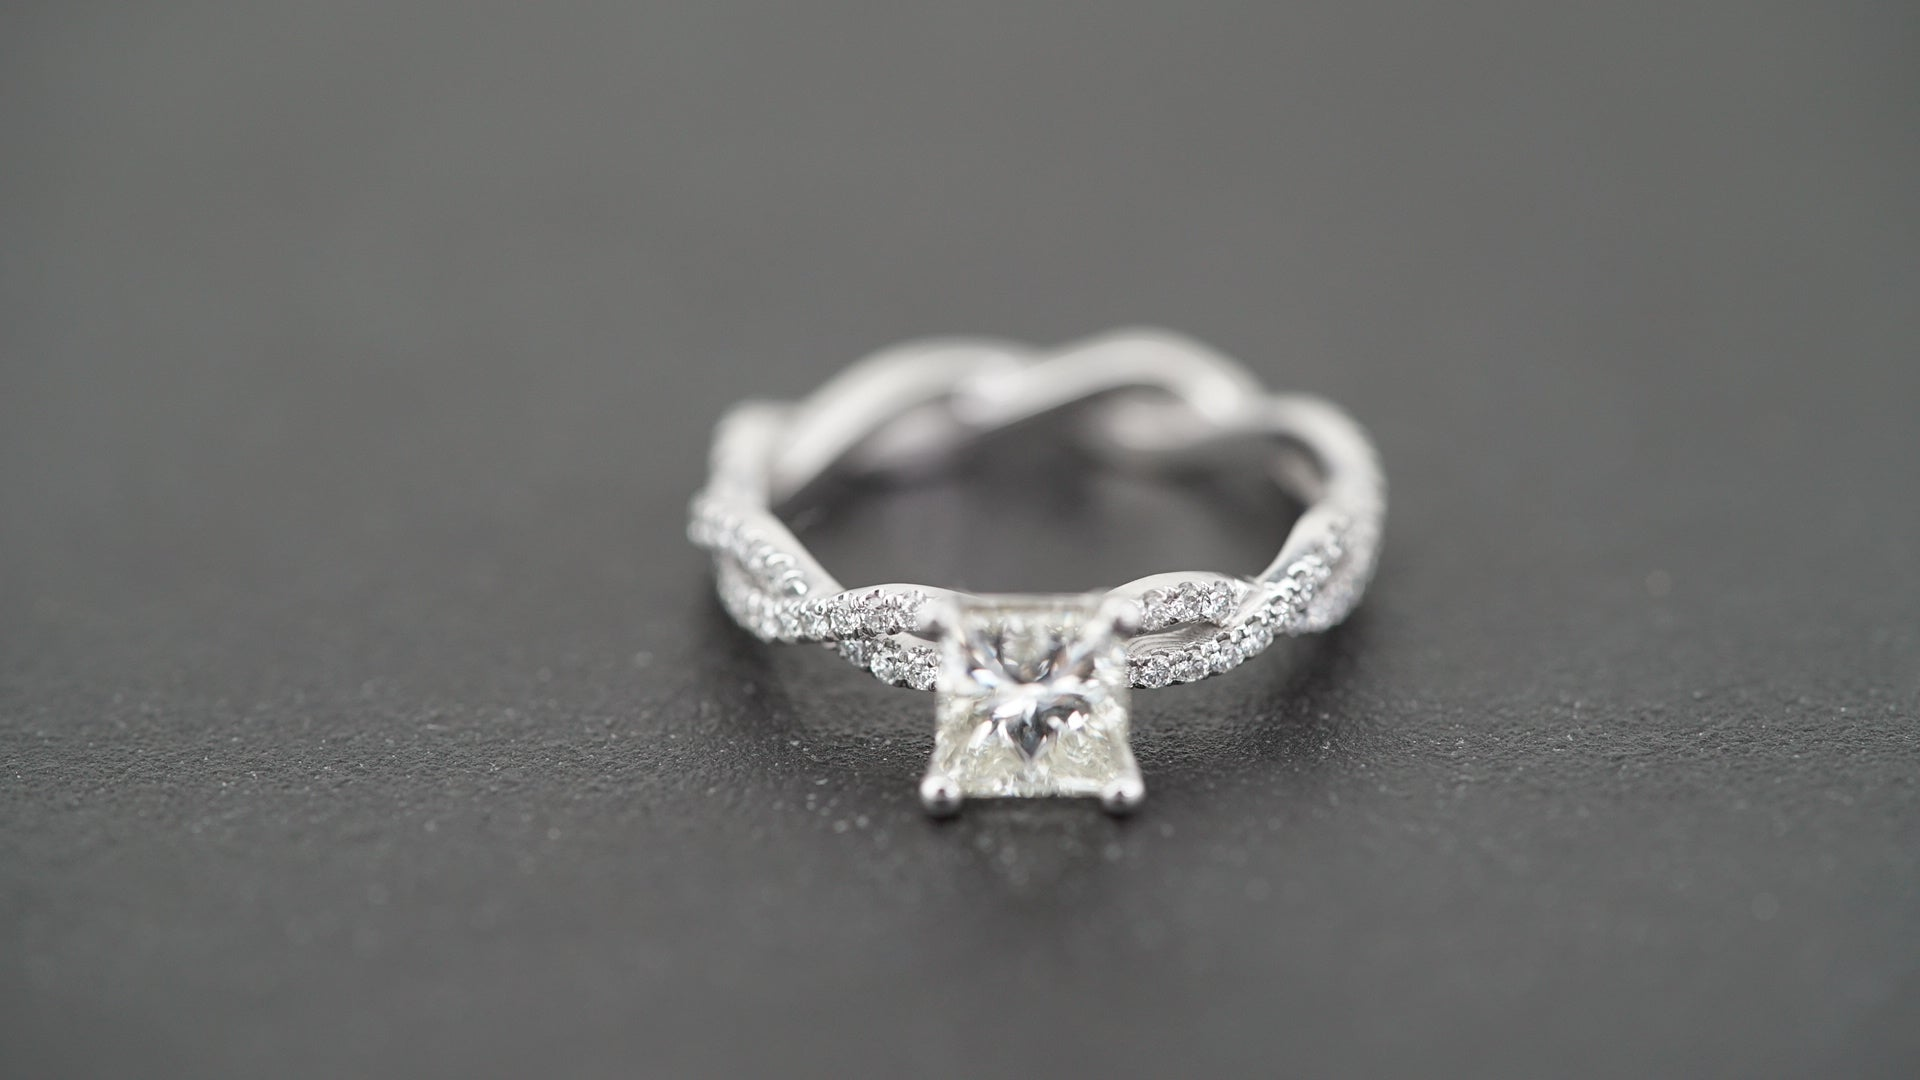 19K White Gold Princess Cut Solitaire Ring